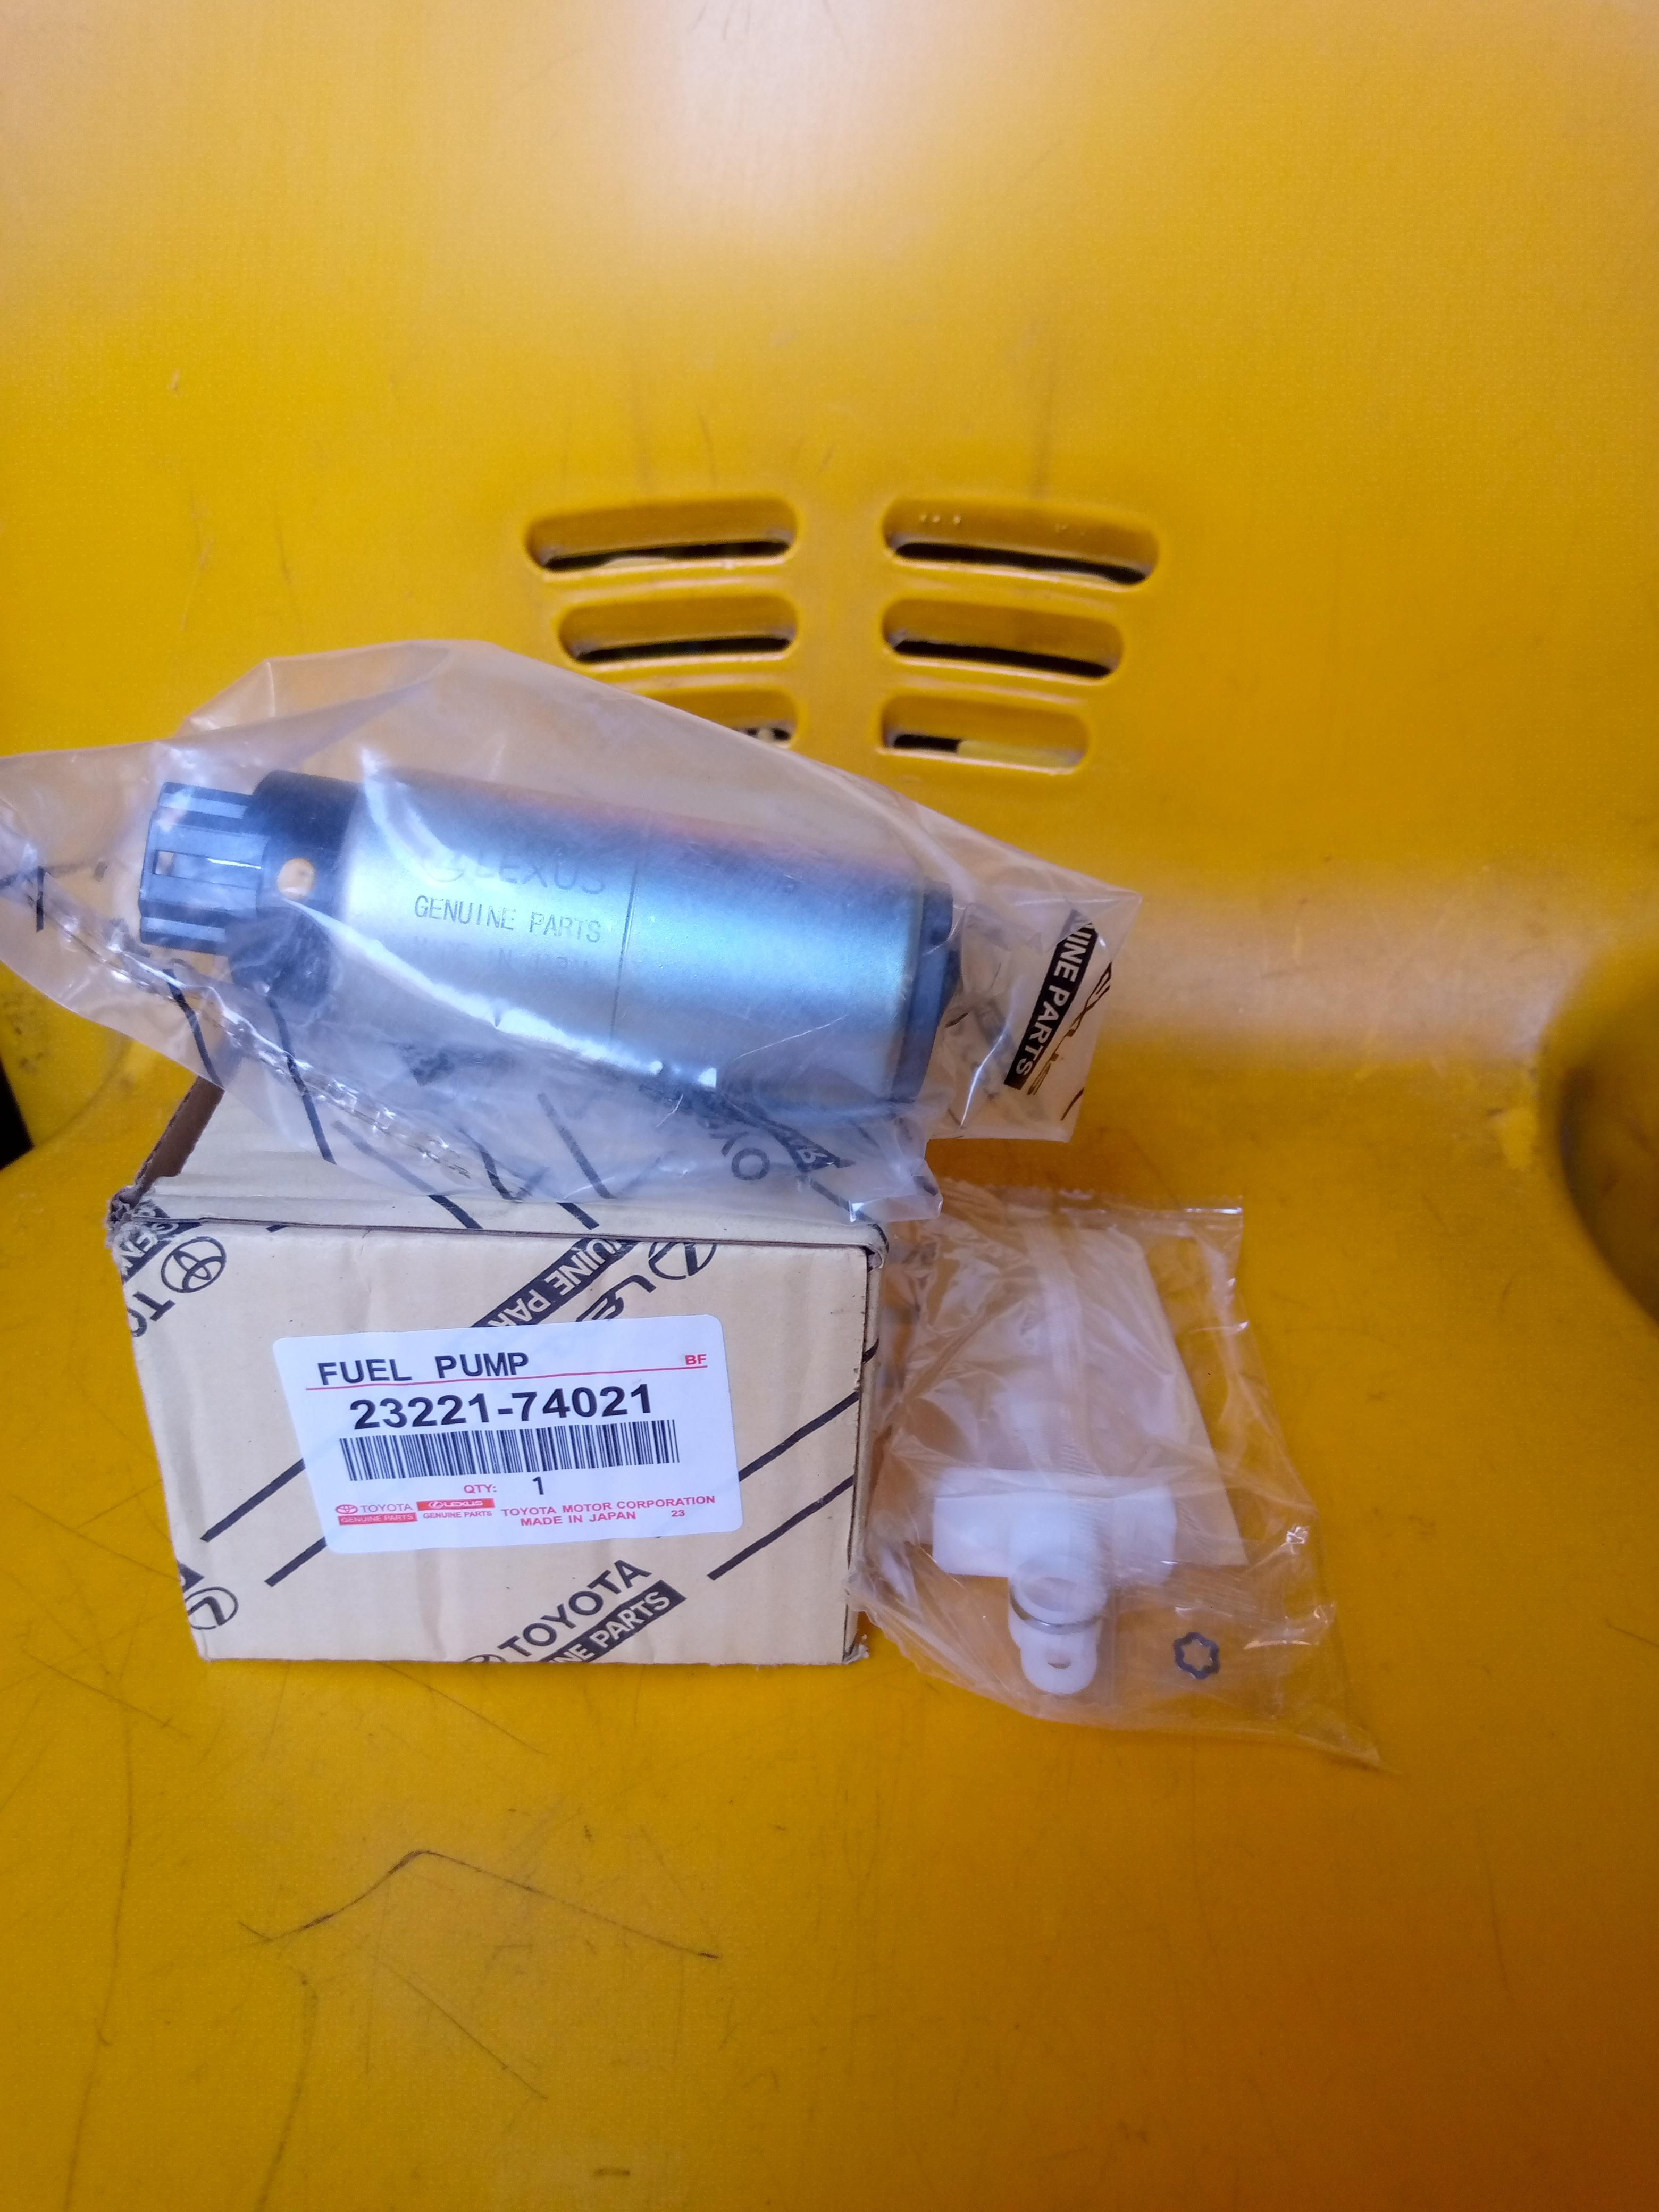 GENUINE TOYOTA FUEL PUMP